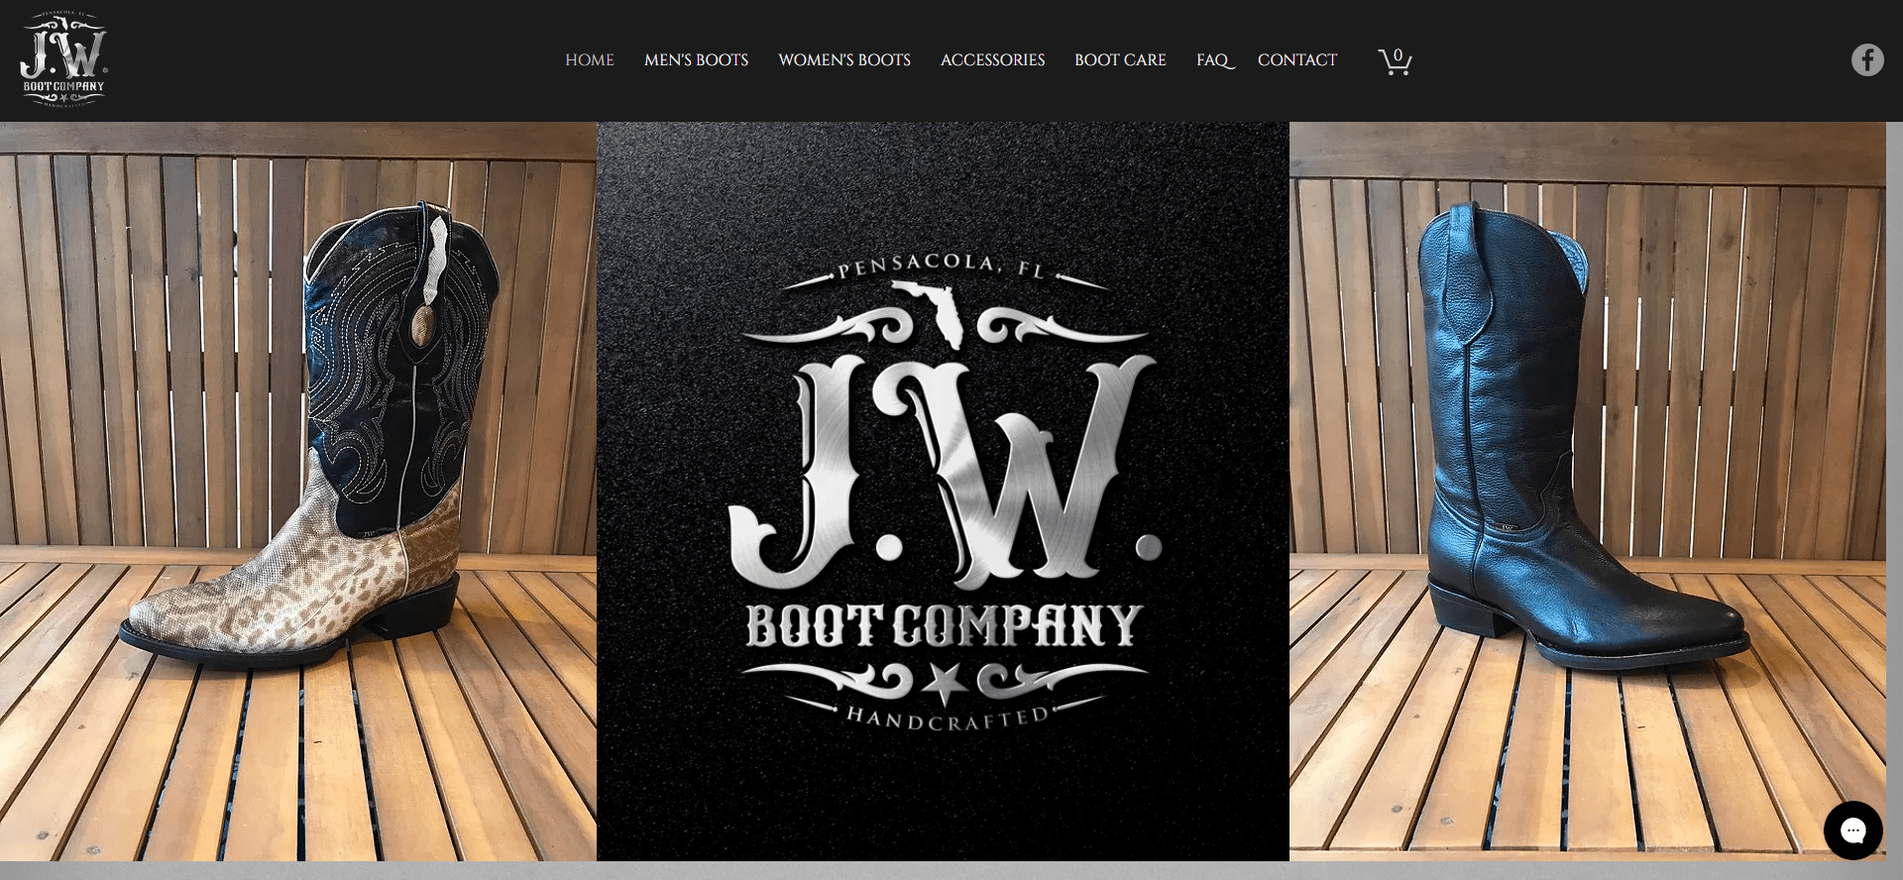 E-commerce Boot Company